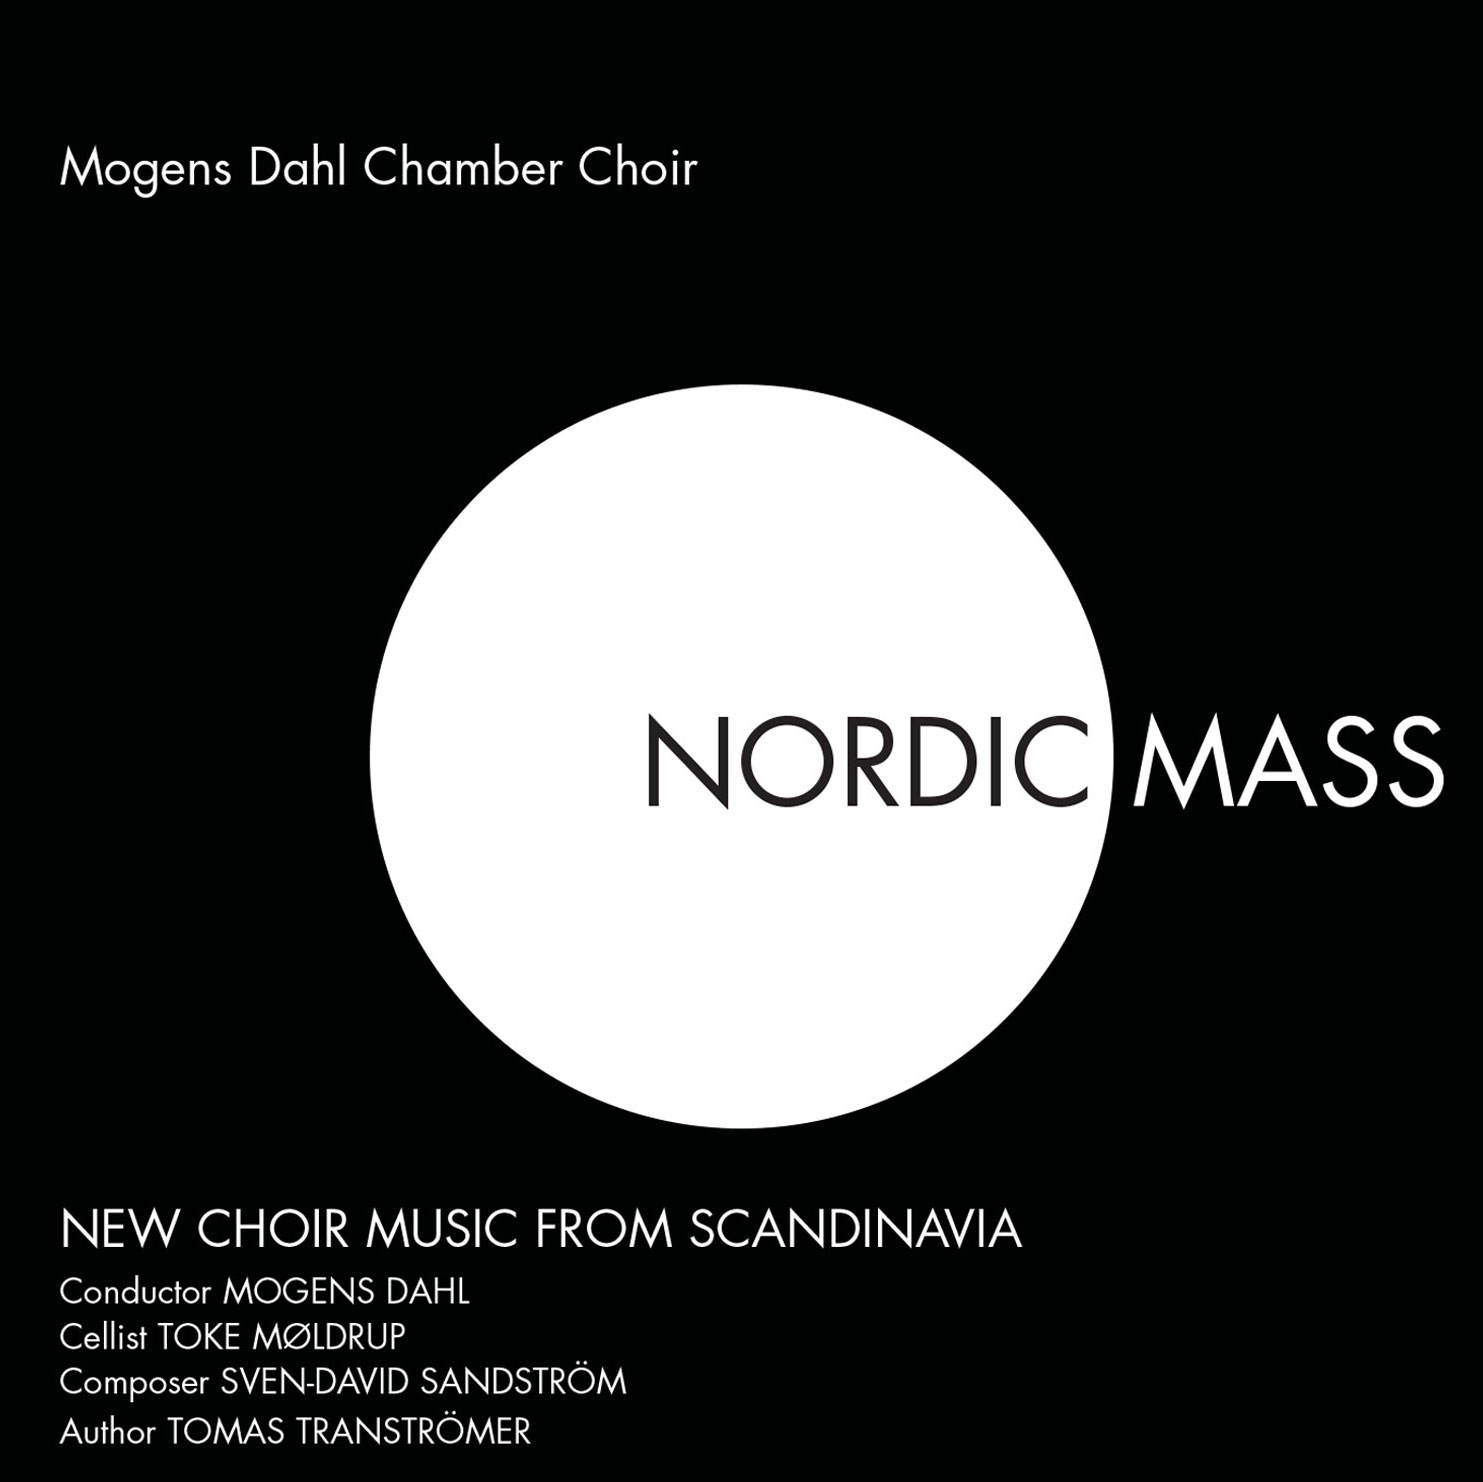 NordicMASS